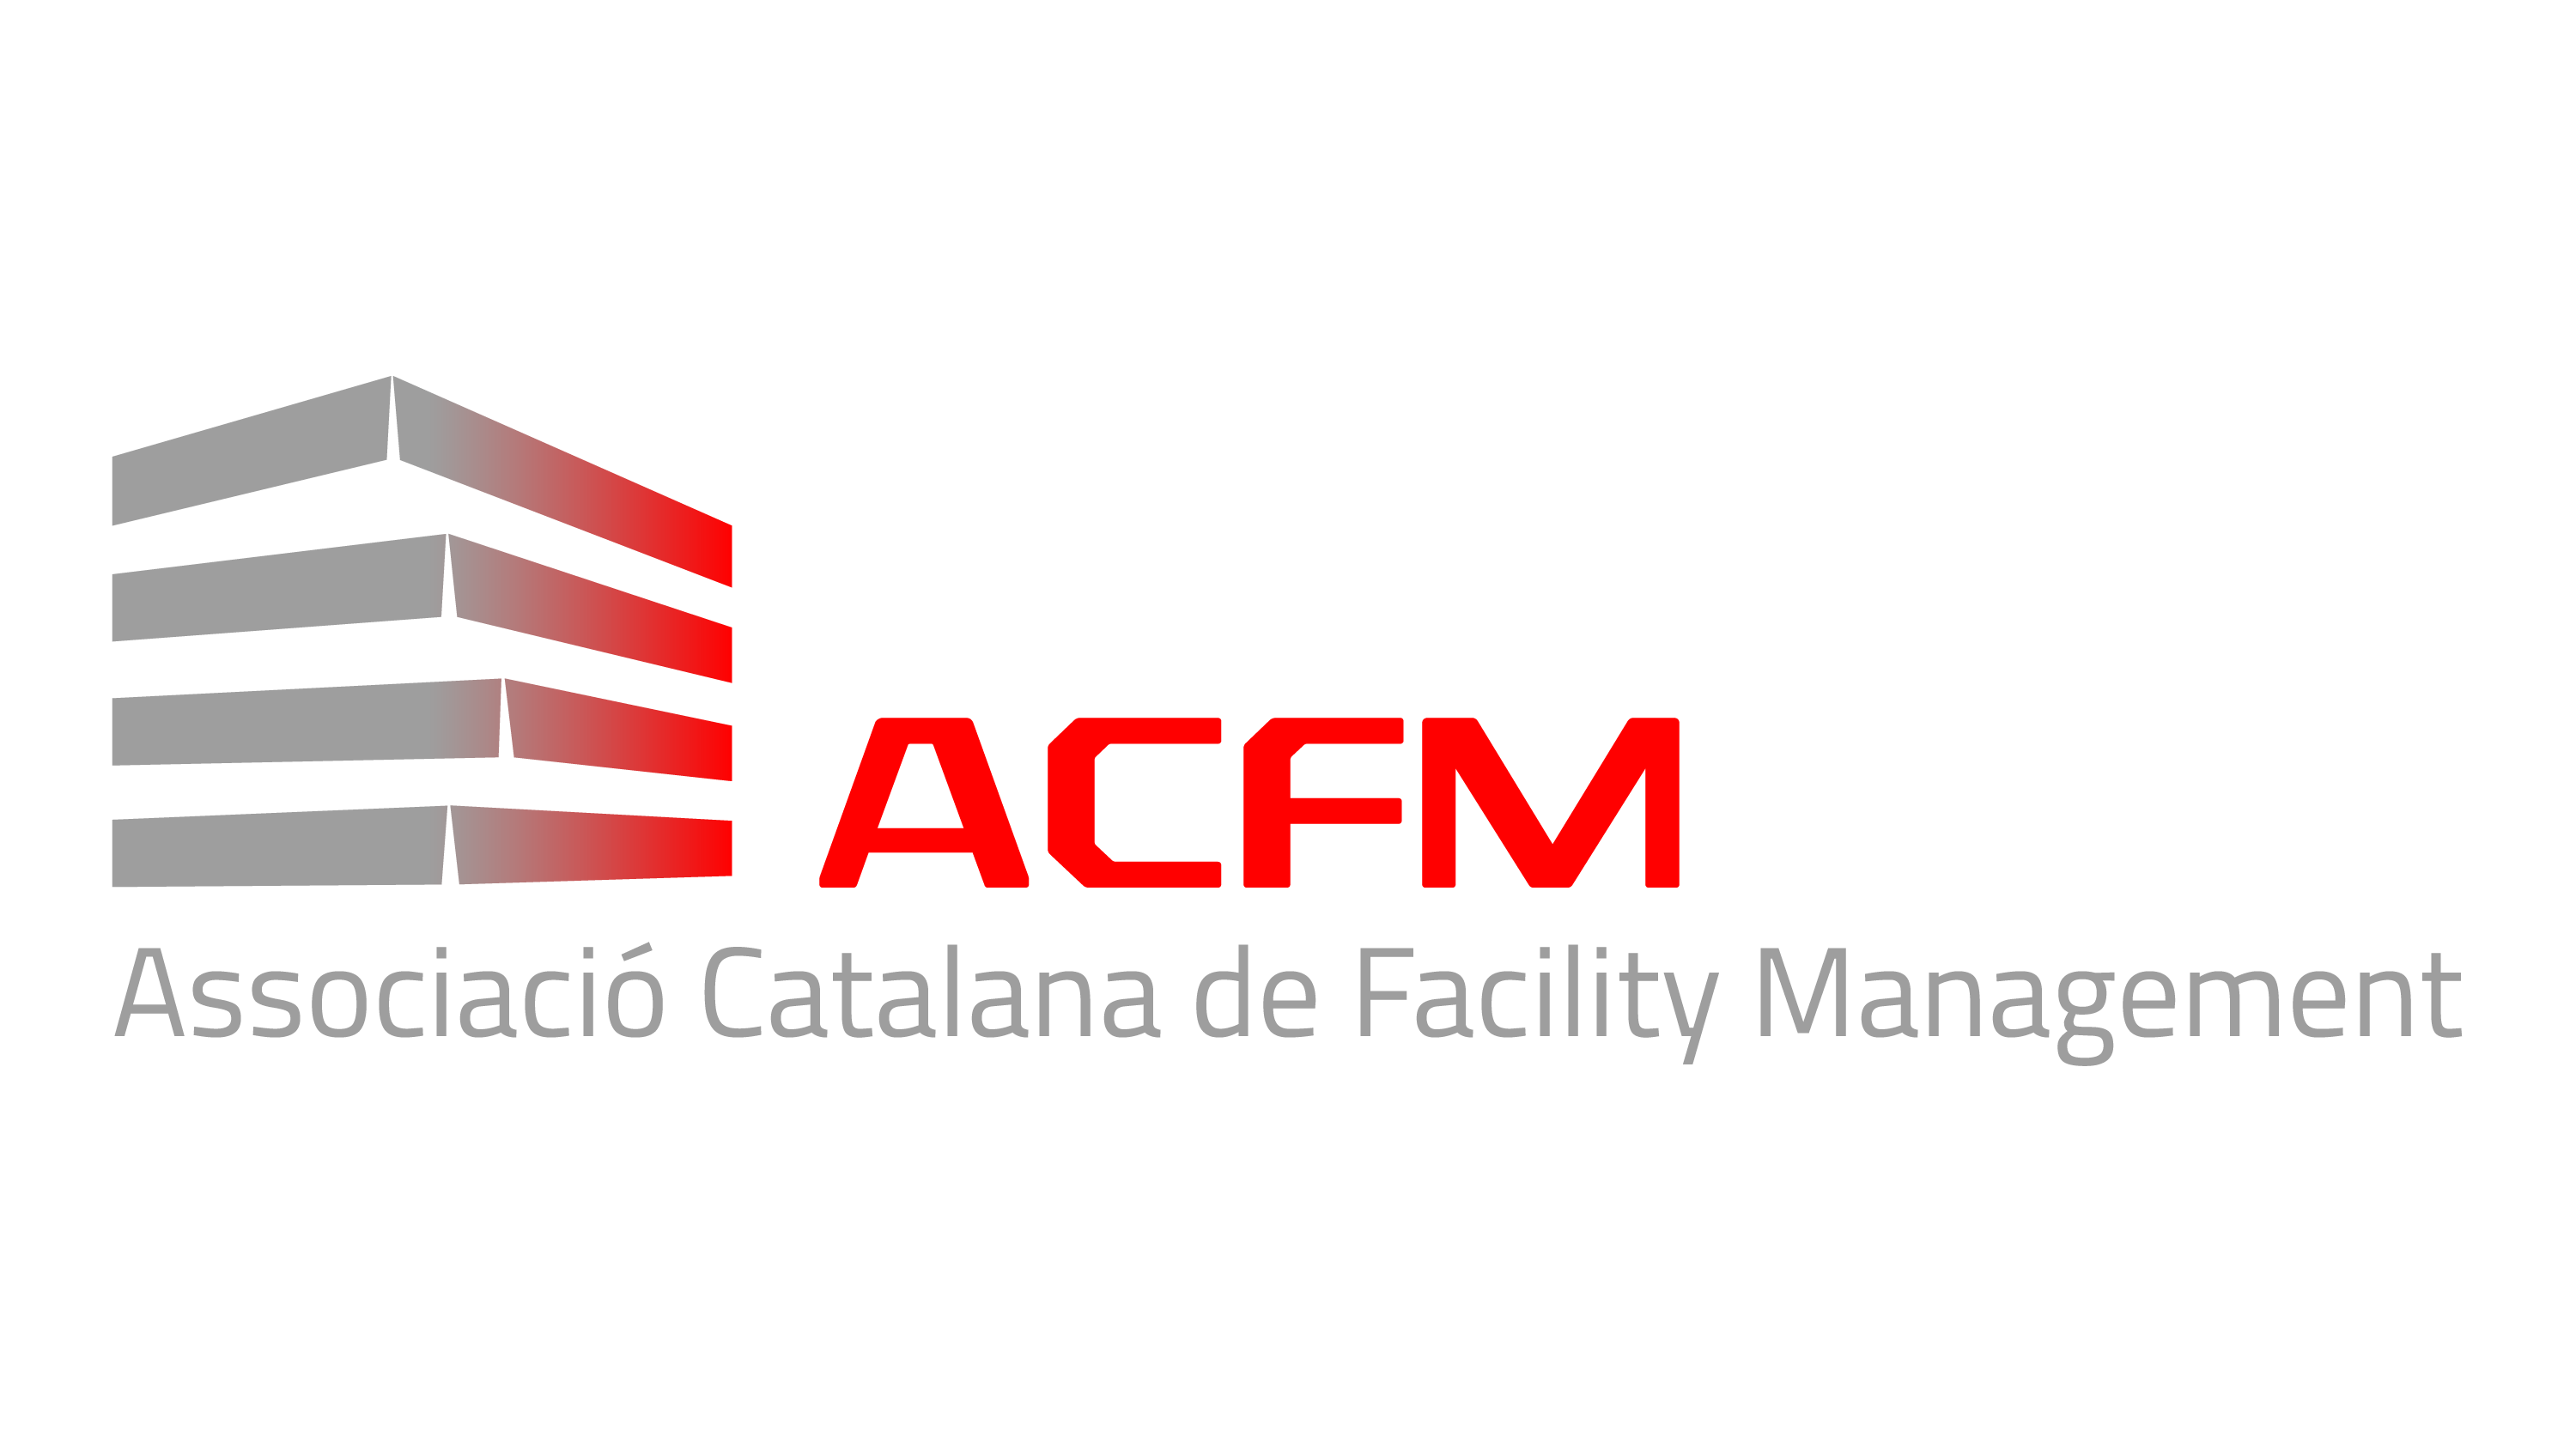 ACFM - The Catalan Association of Facility Management